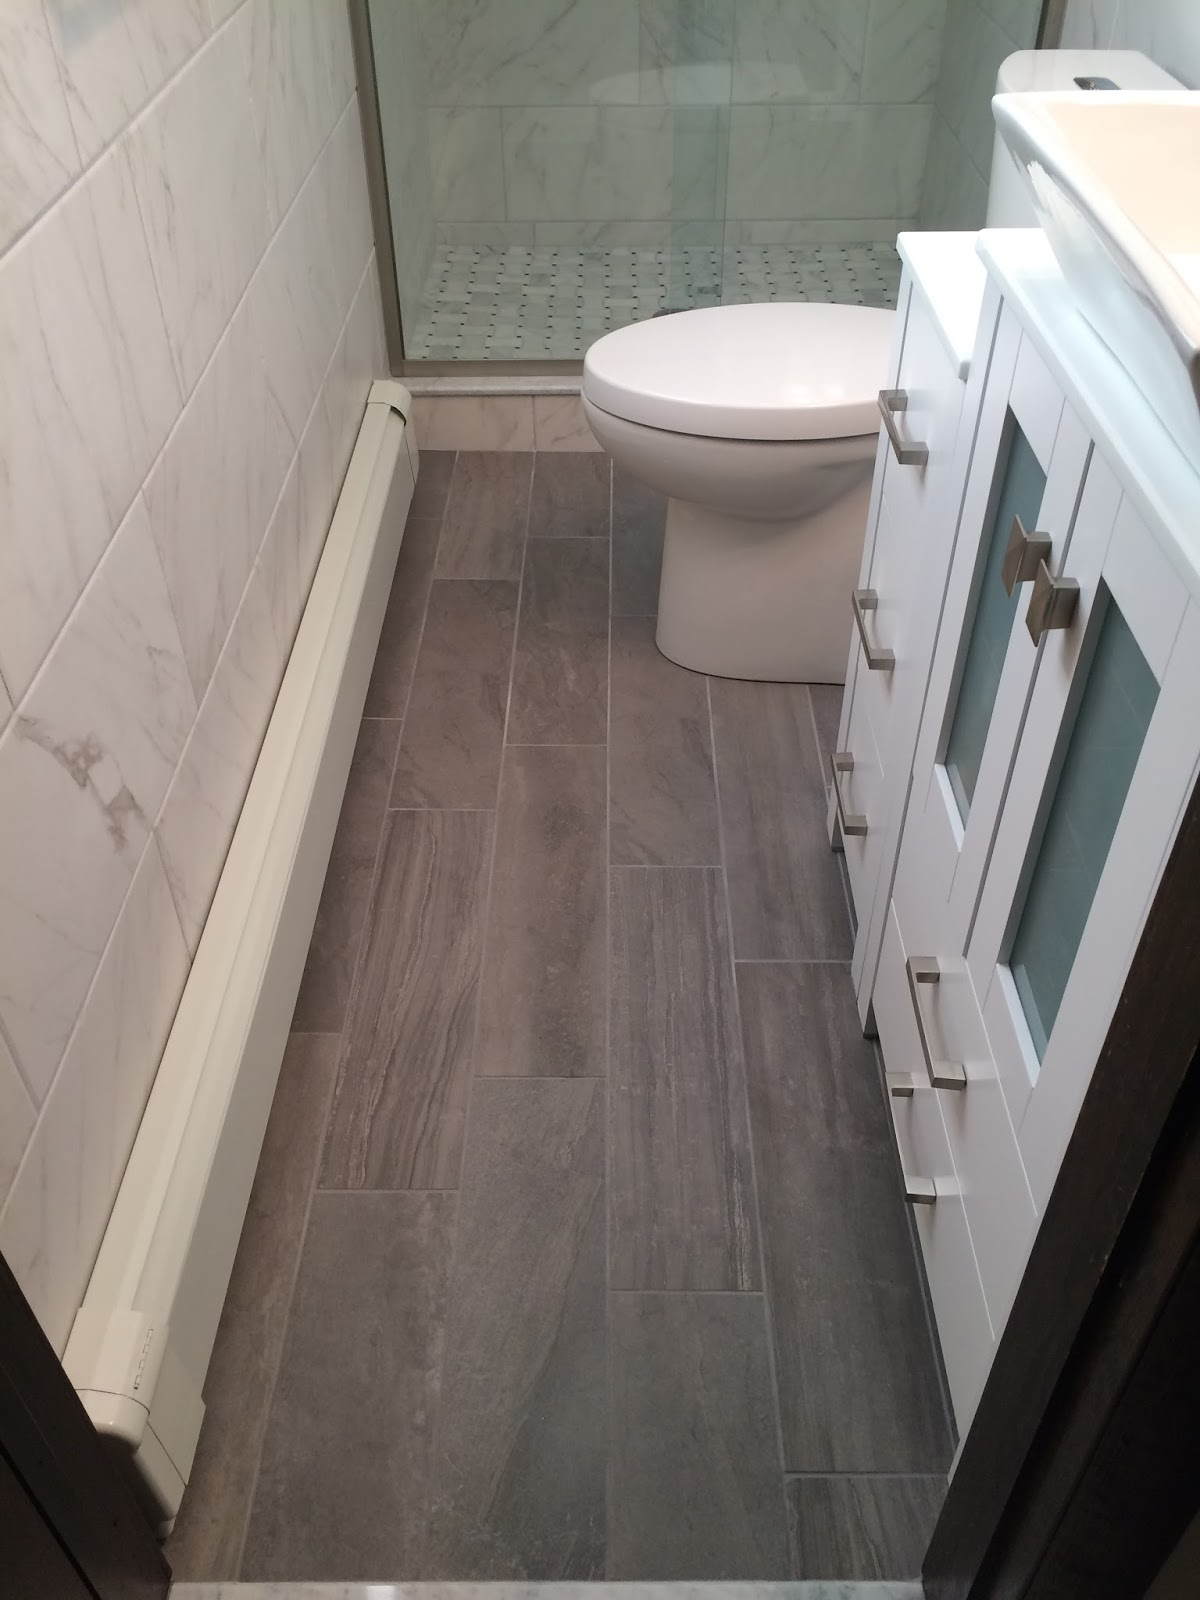 Custom bathroom remodeling modern porcelain planking floor tile with a random staggered pattern dailygadgetfo Images